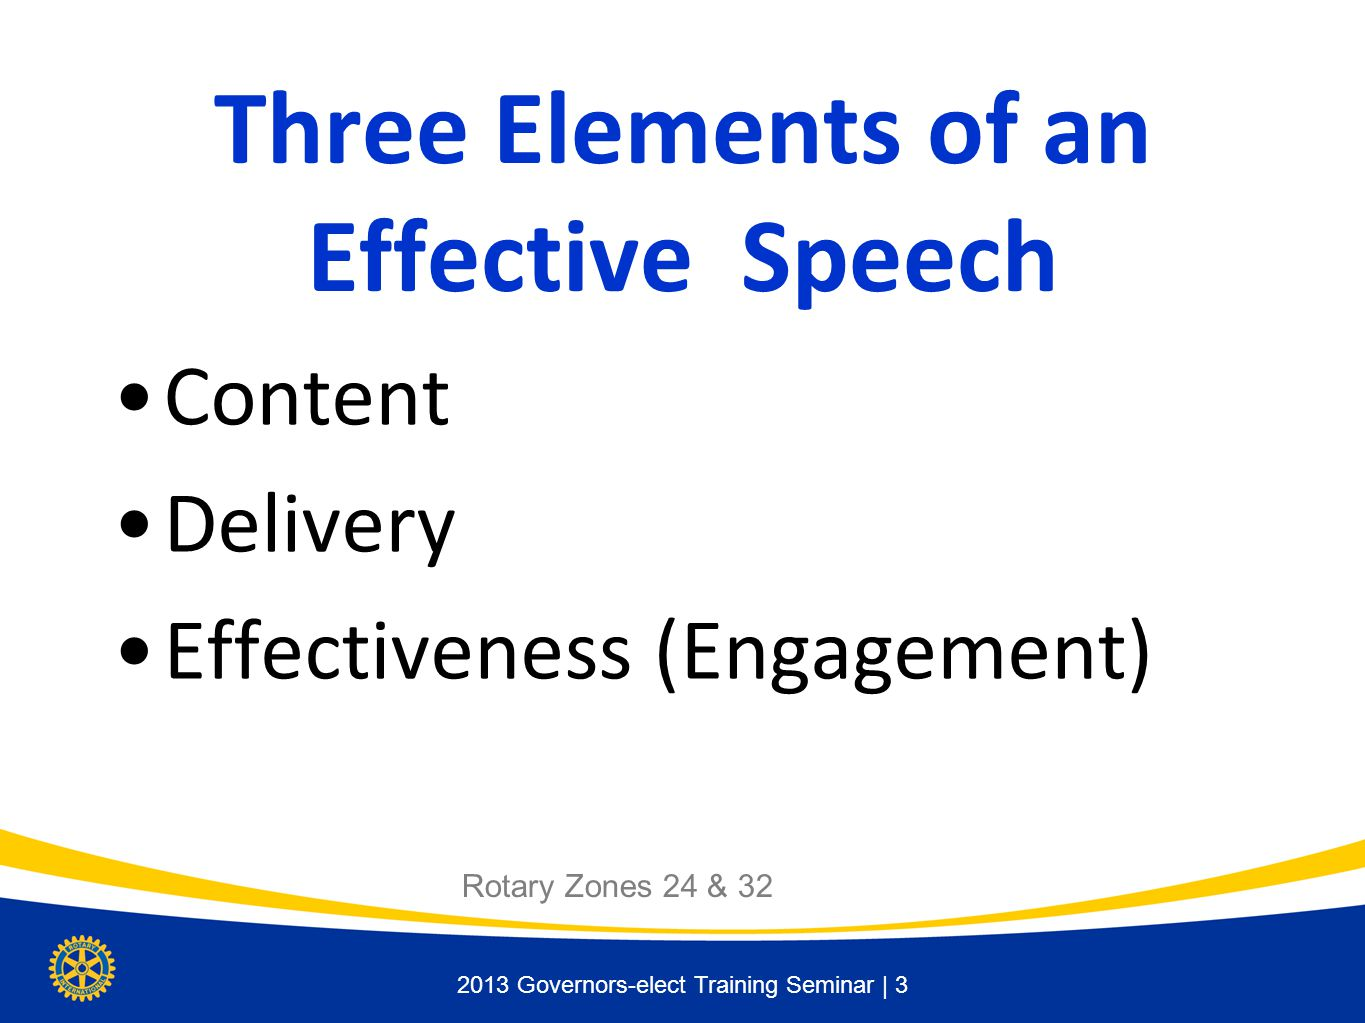 2013 Governors-elect Training Seminar | 3 Three Elements of an Effective Speech Content Delivery Effectiveness (Engagement) Rotary Zones 24 & 32